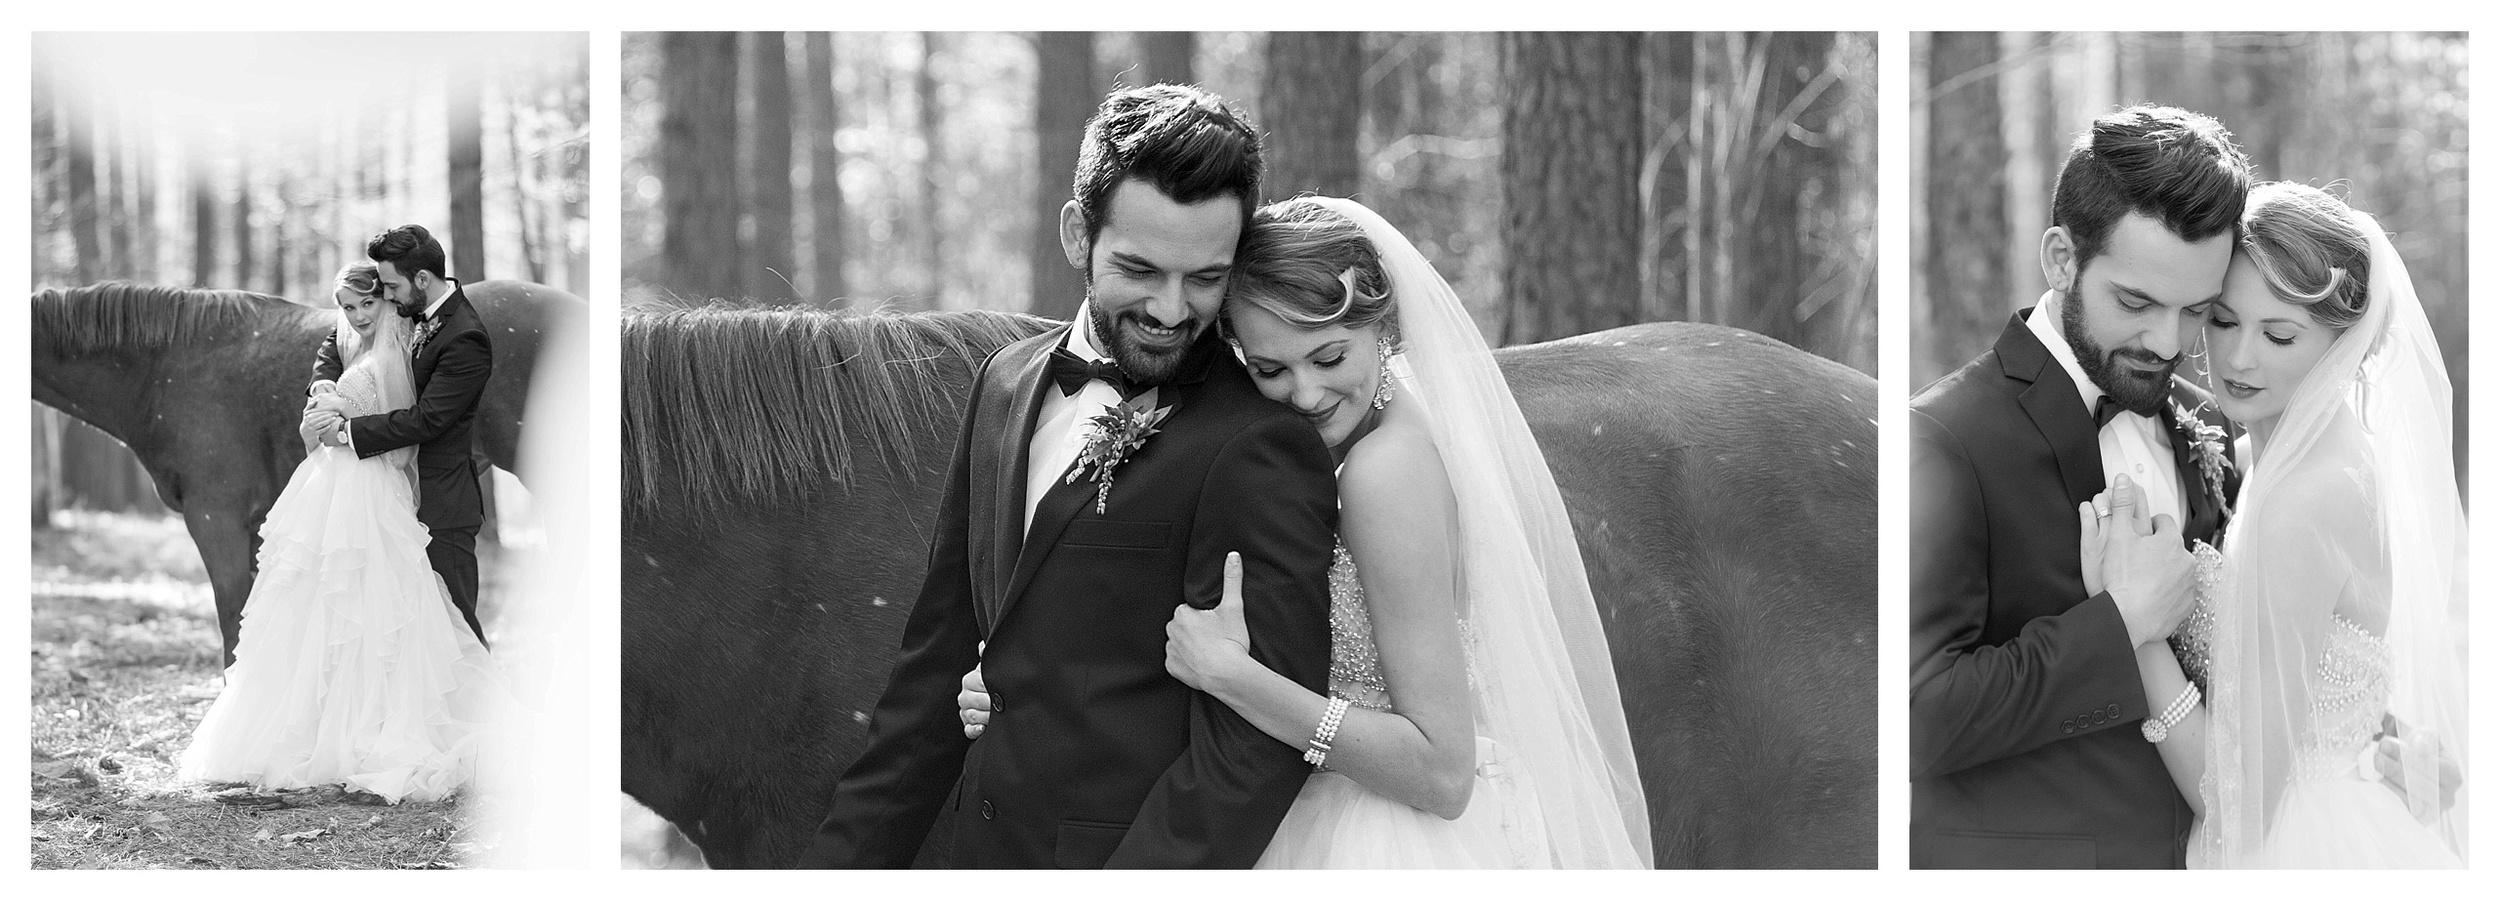 Sierra Vista Wedding Photographer, Lynchburg Wedding Photographer, Ashley Eiban Photography, www.ashleyeiban.com